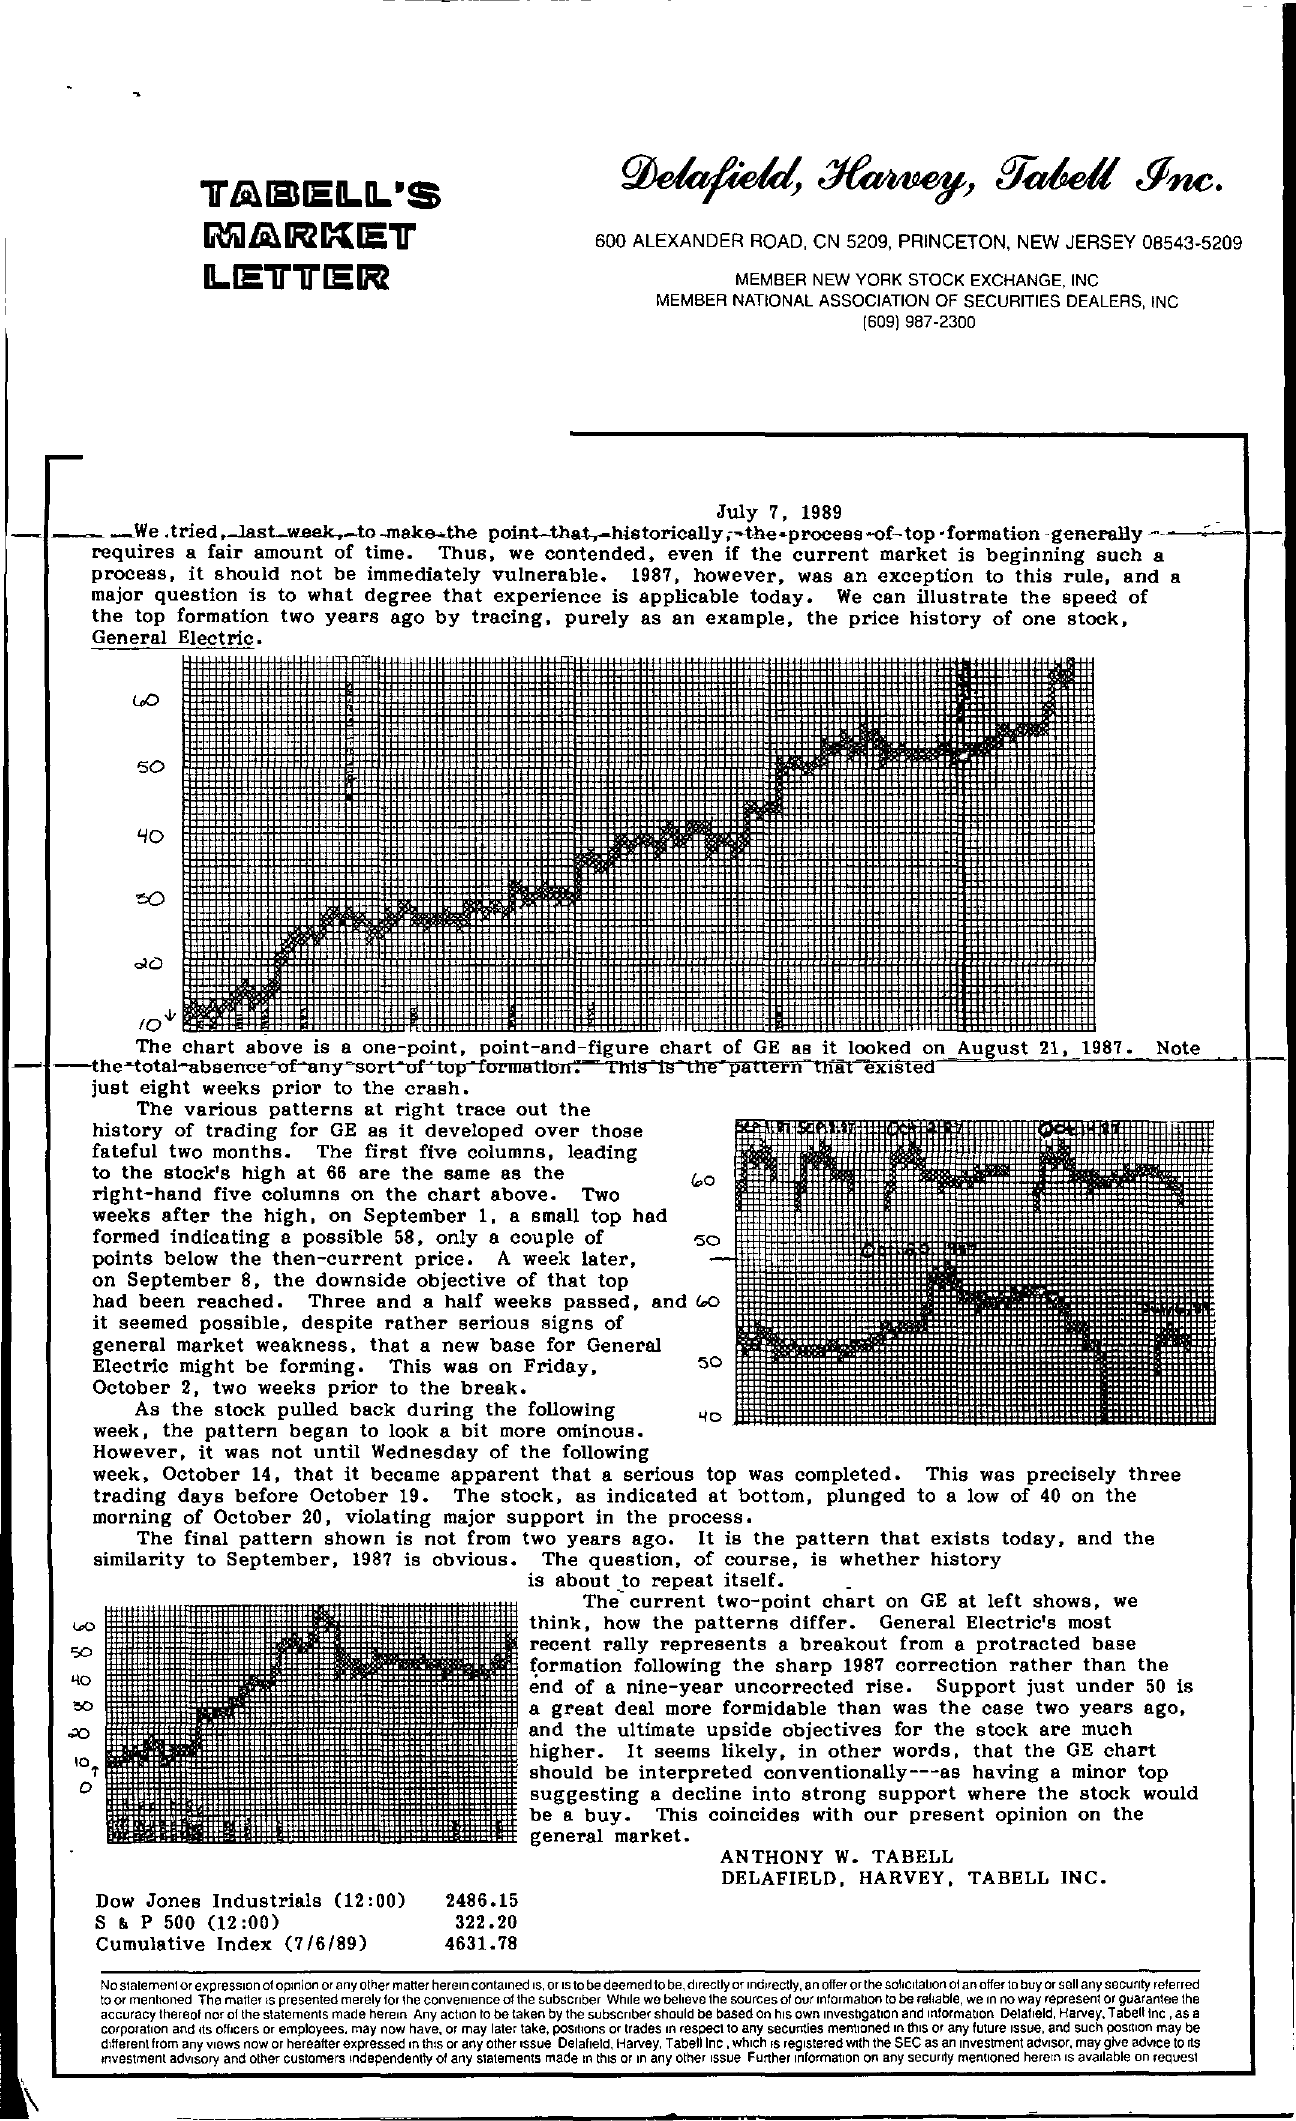 Tabell's Market Letter - July 07, 1989